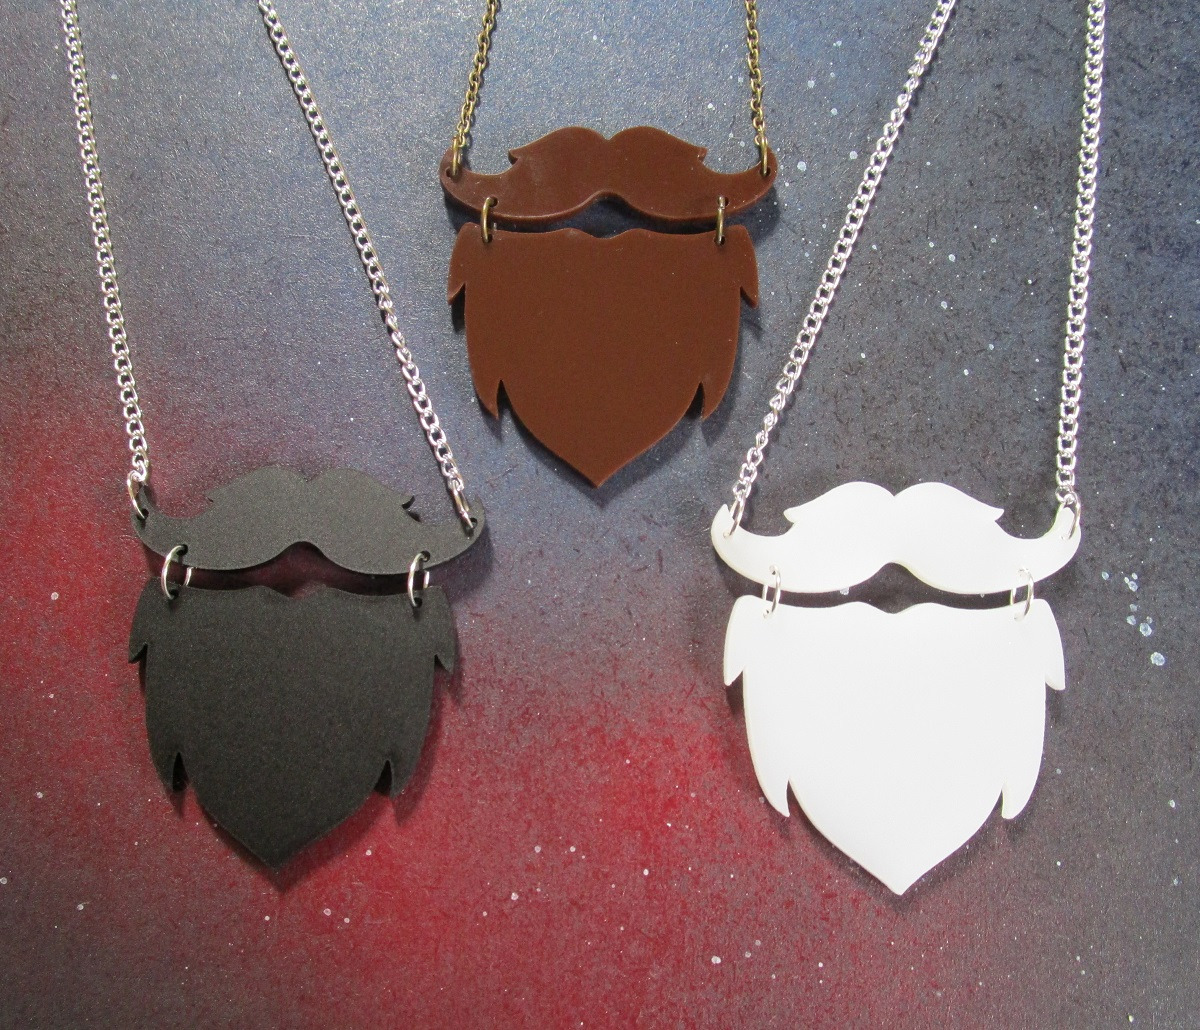 Beards! Beards for sale! Get your Beards here! – No Shave November & Santa Claus =^.^=